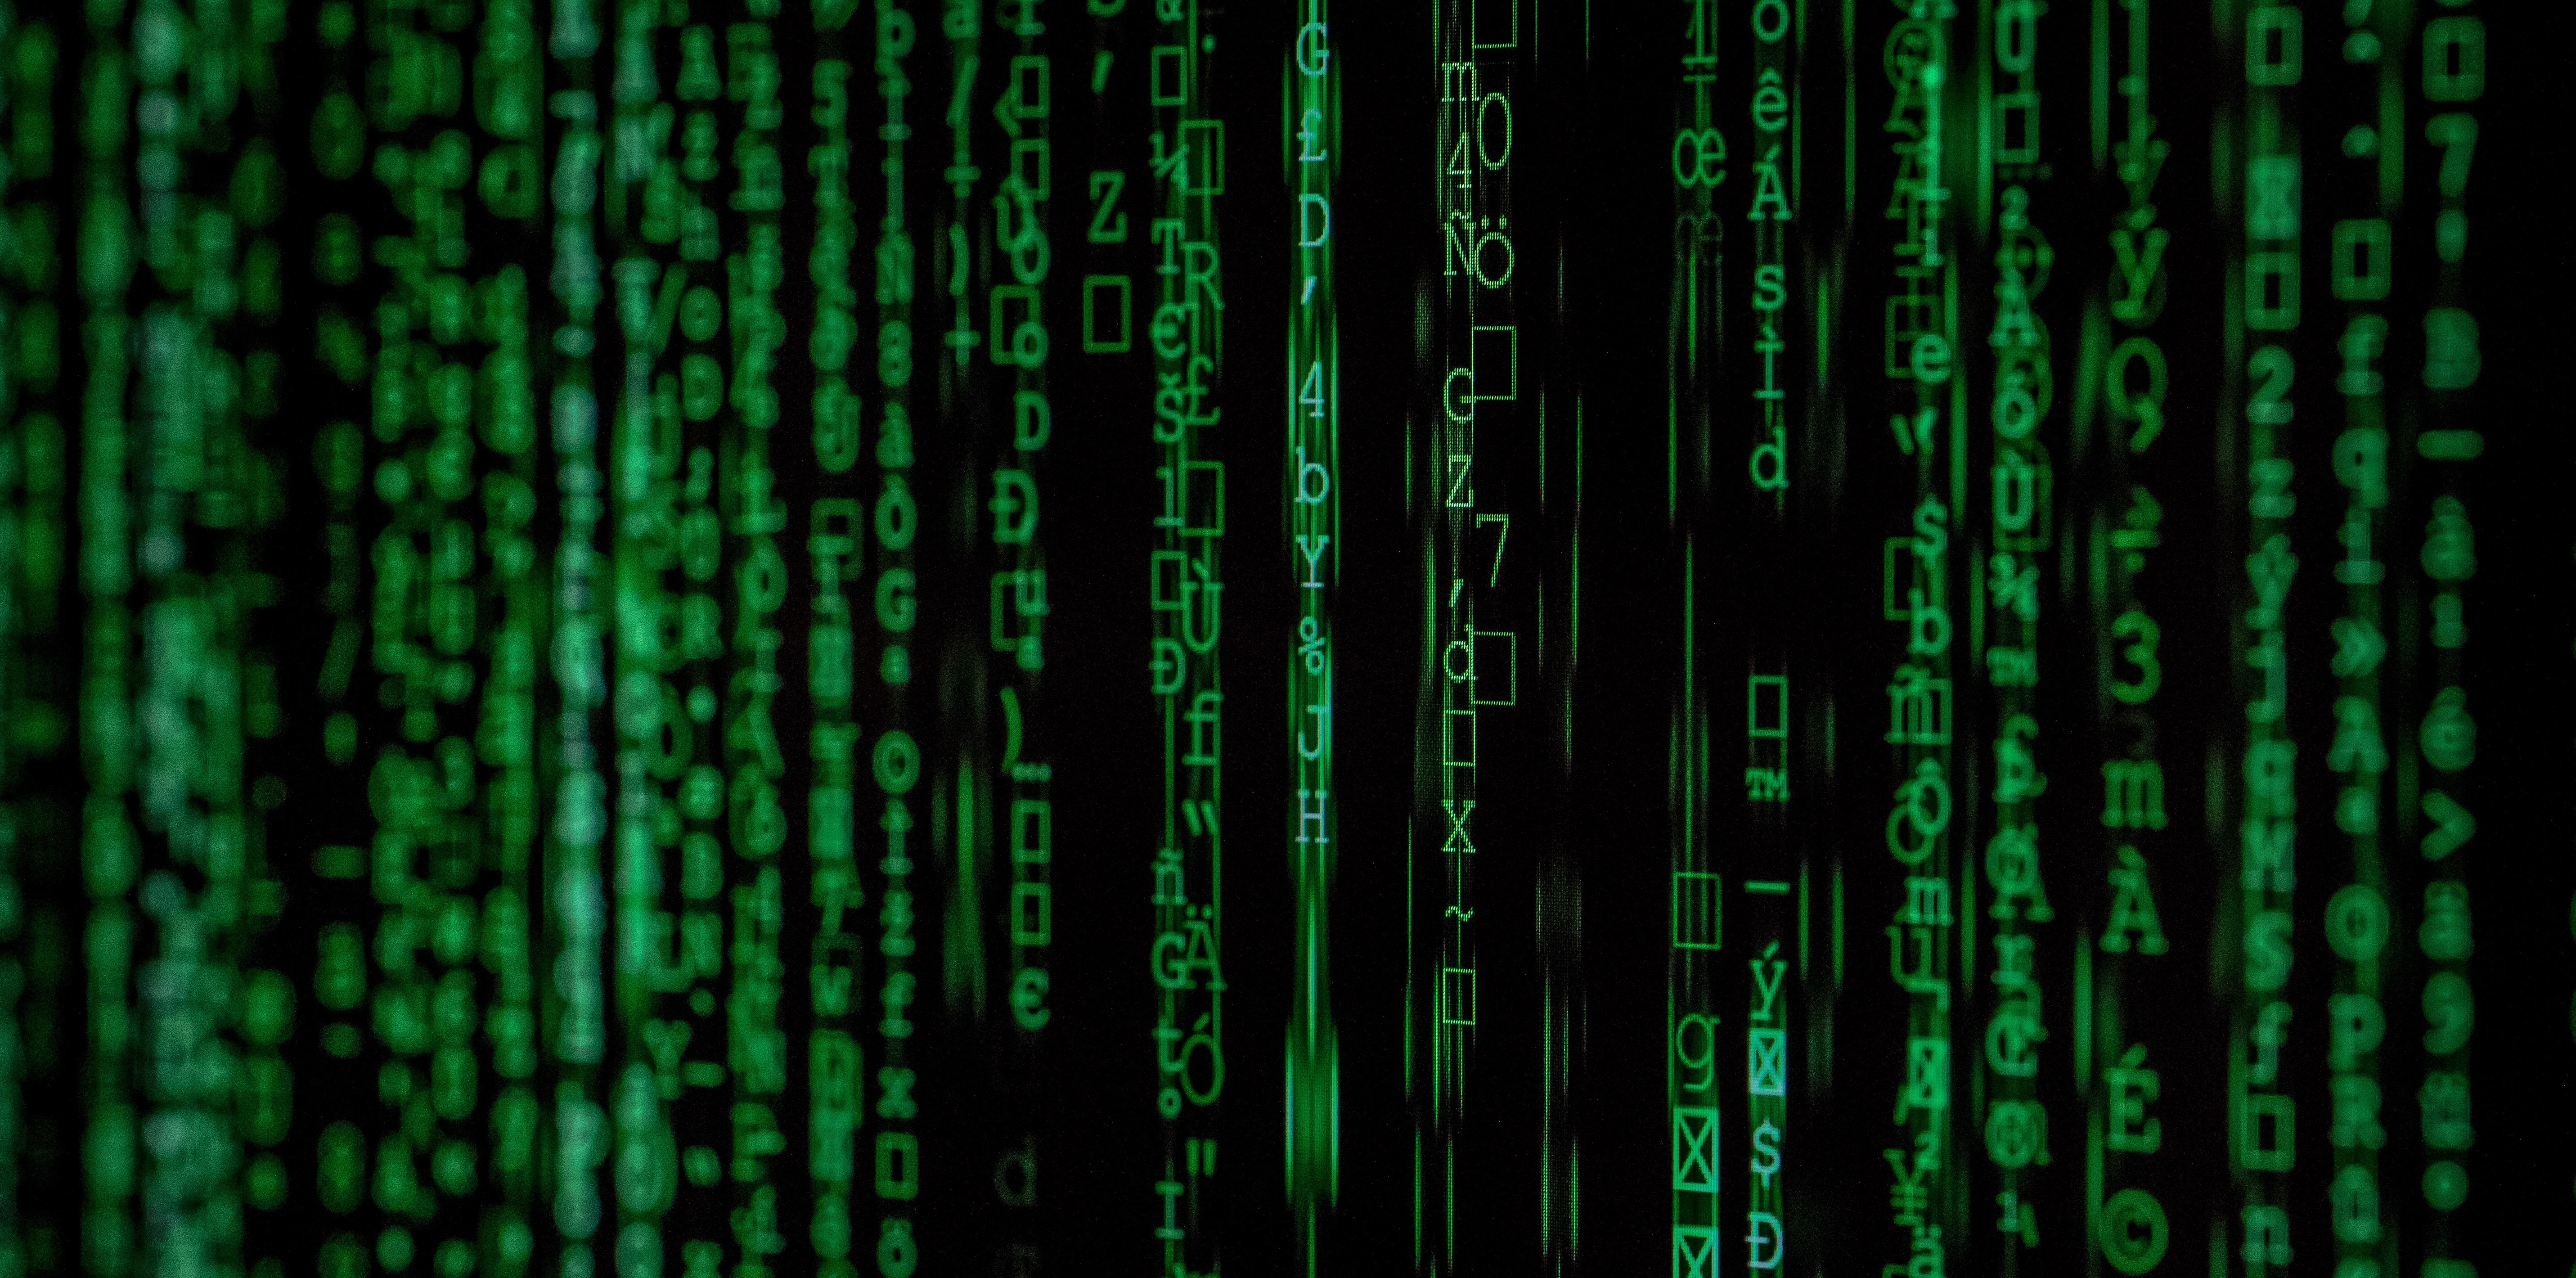 Data manipulation: The cyberthreat of future military operations